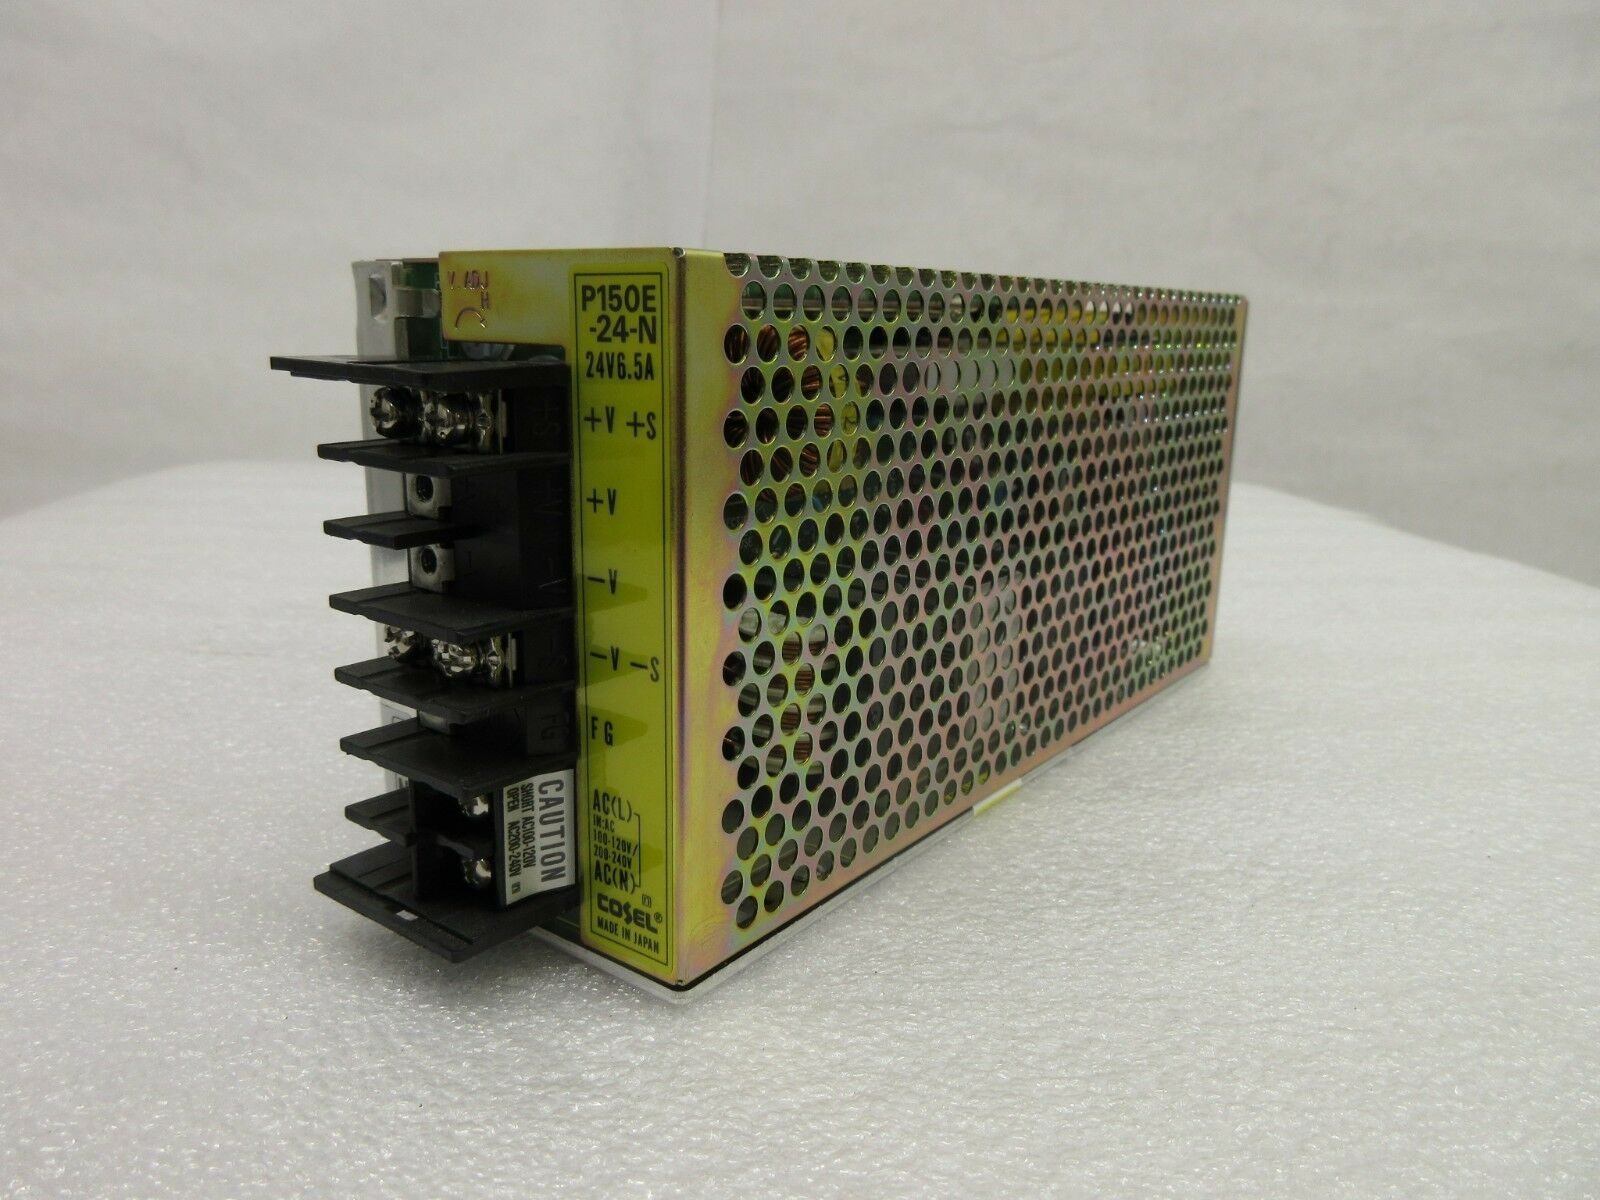 Cosel P150E-24-N Power Supply P150E-24 Used Working